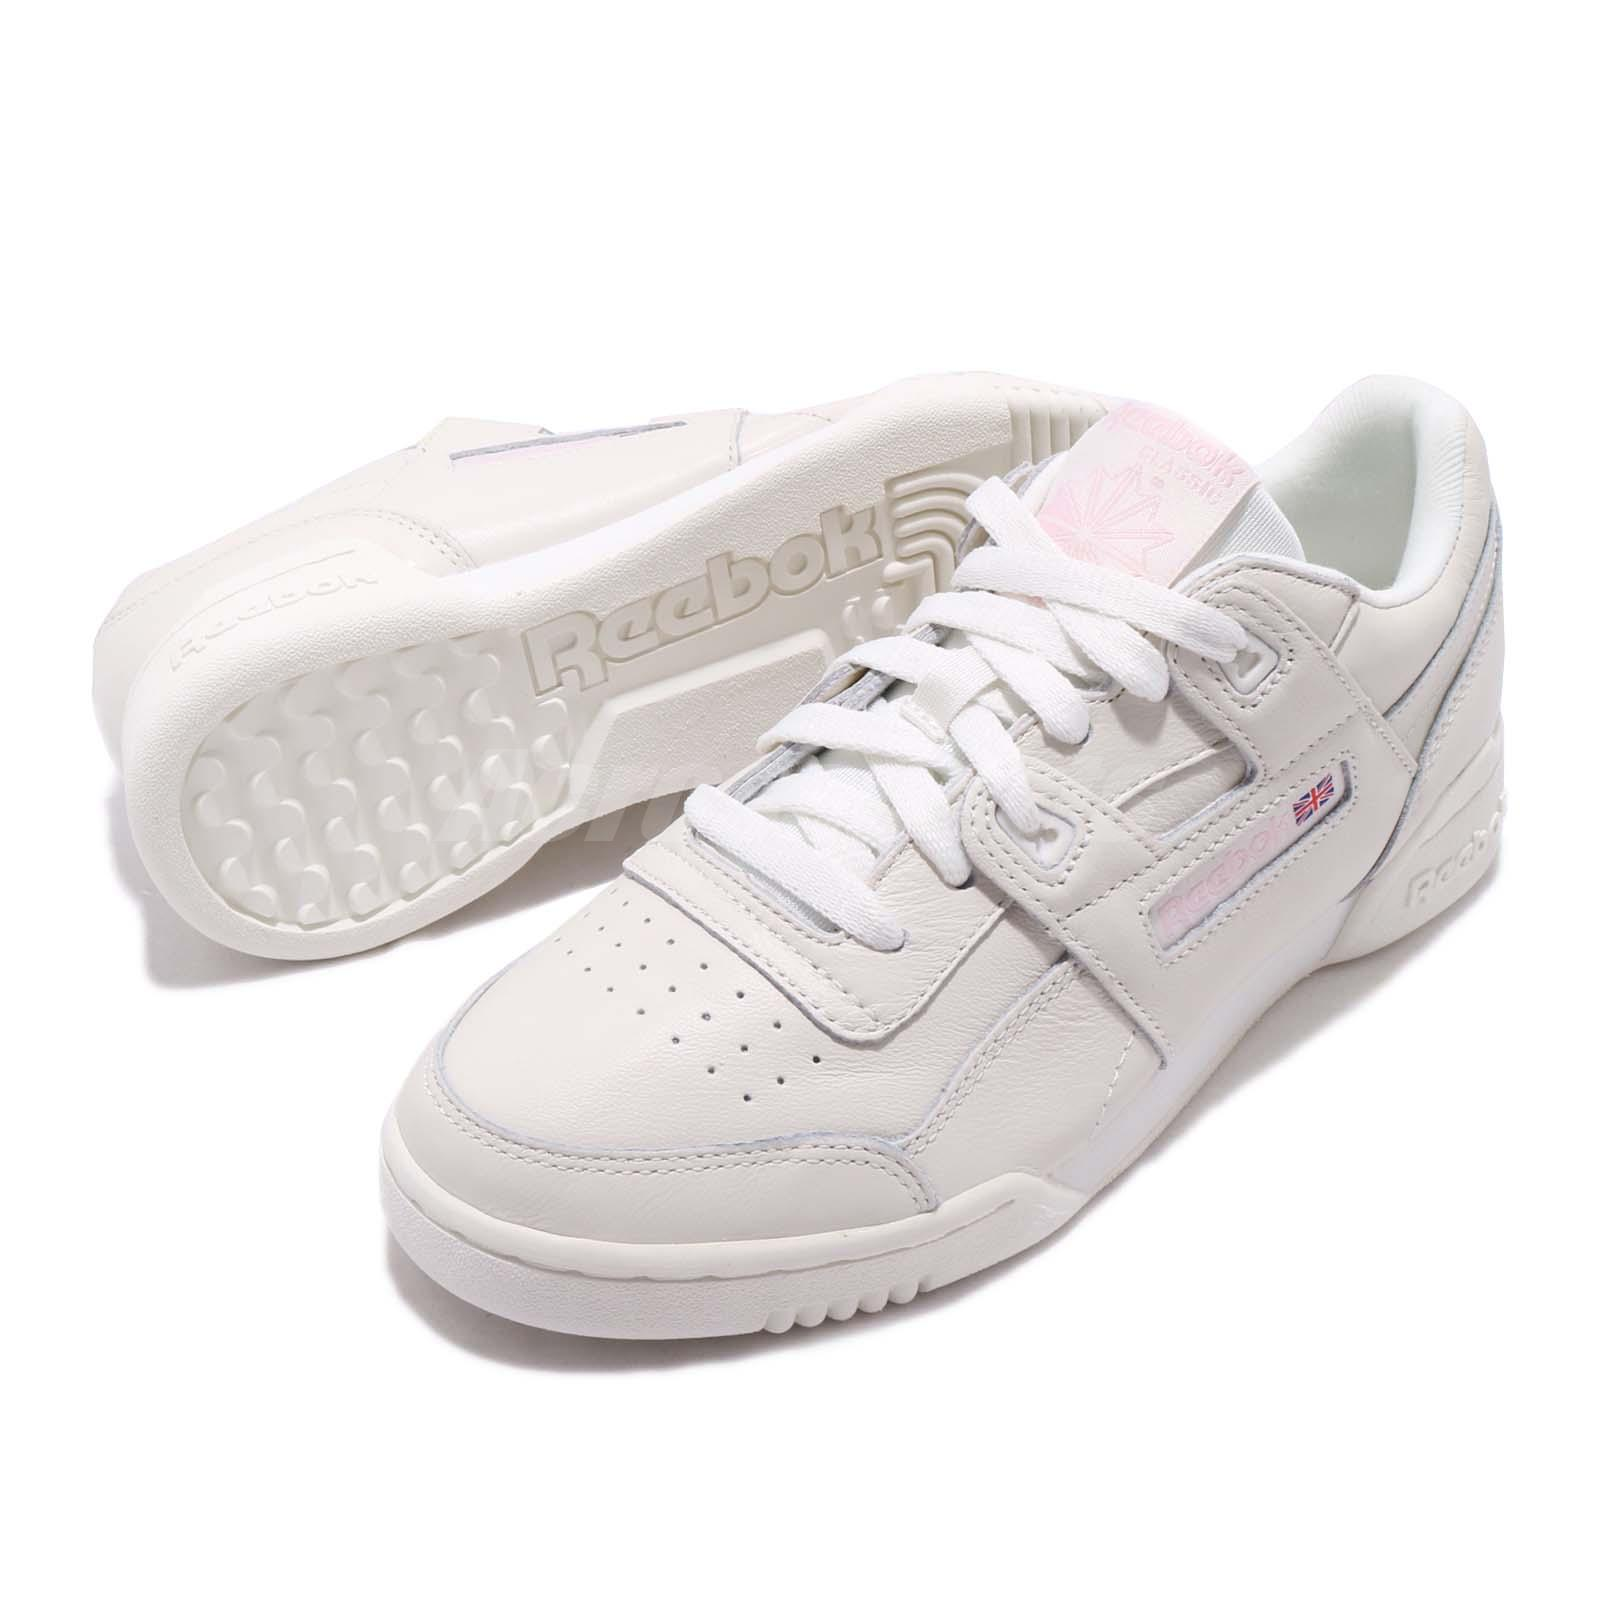 330415f13a49a Reebok Workout LO Plus White Practical Pink Women Casual Shoes ...